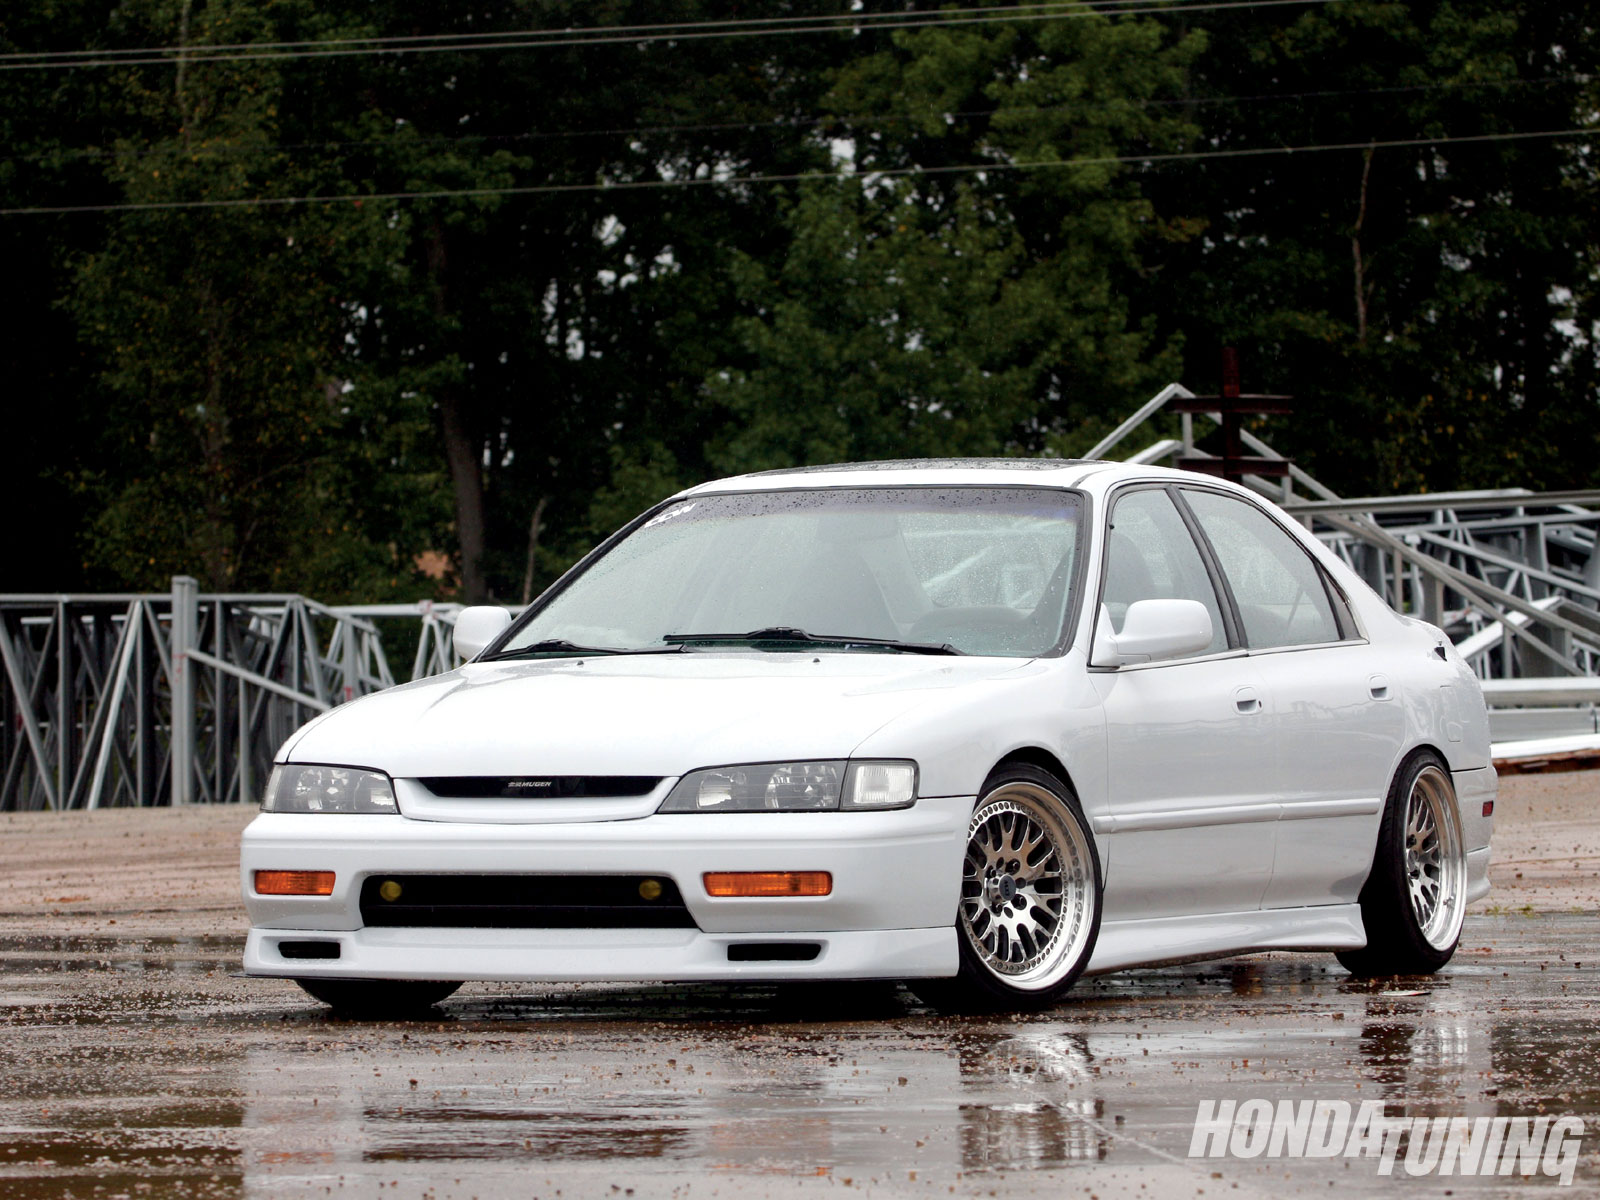 1995 honda accord information and photos zombiedrive. Black Bedroom Furniture Sets. Home Design Ideas